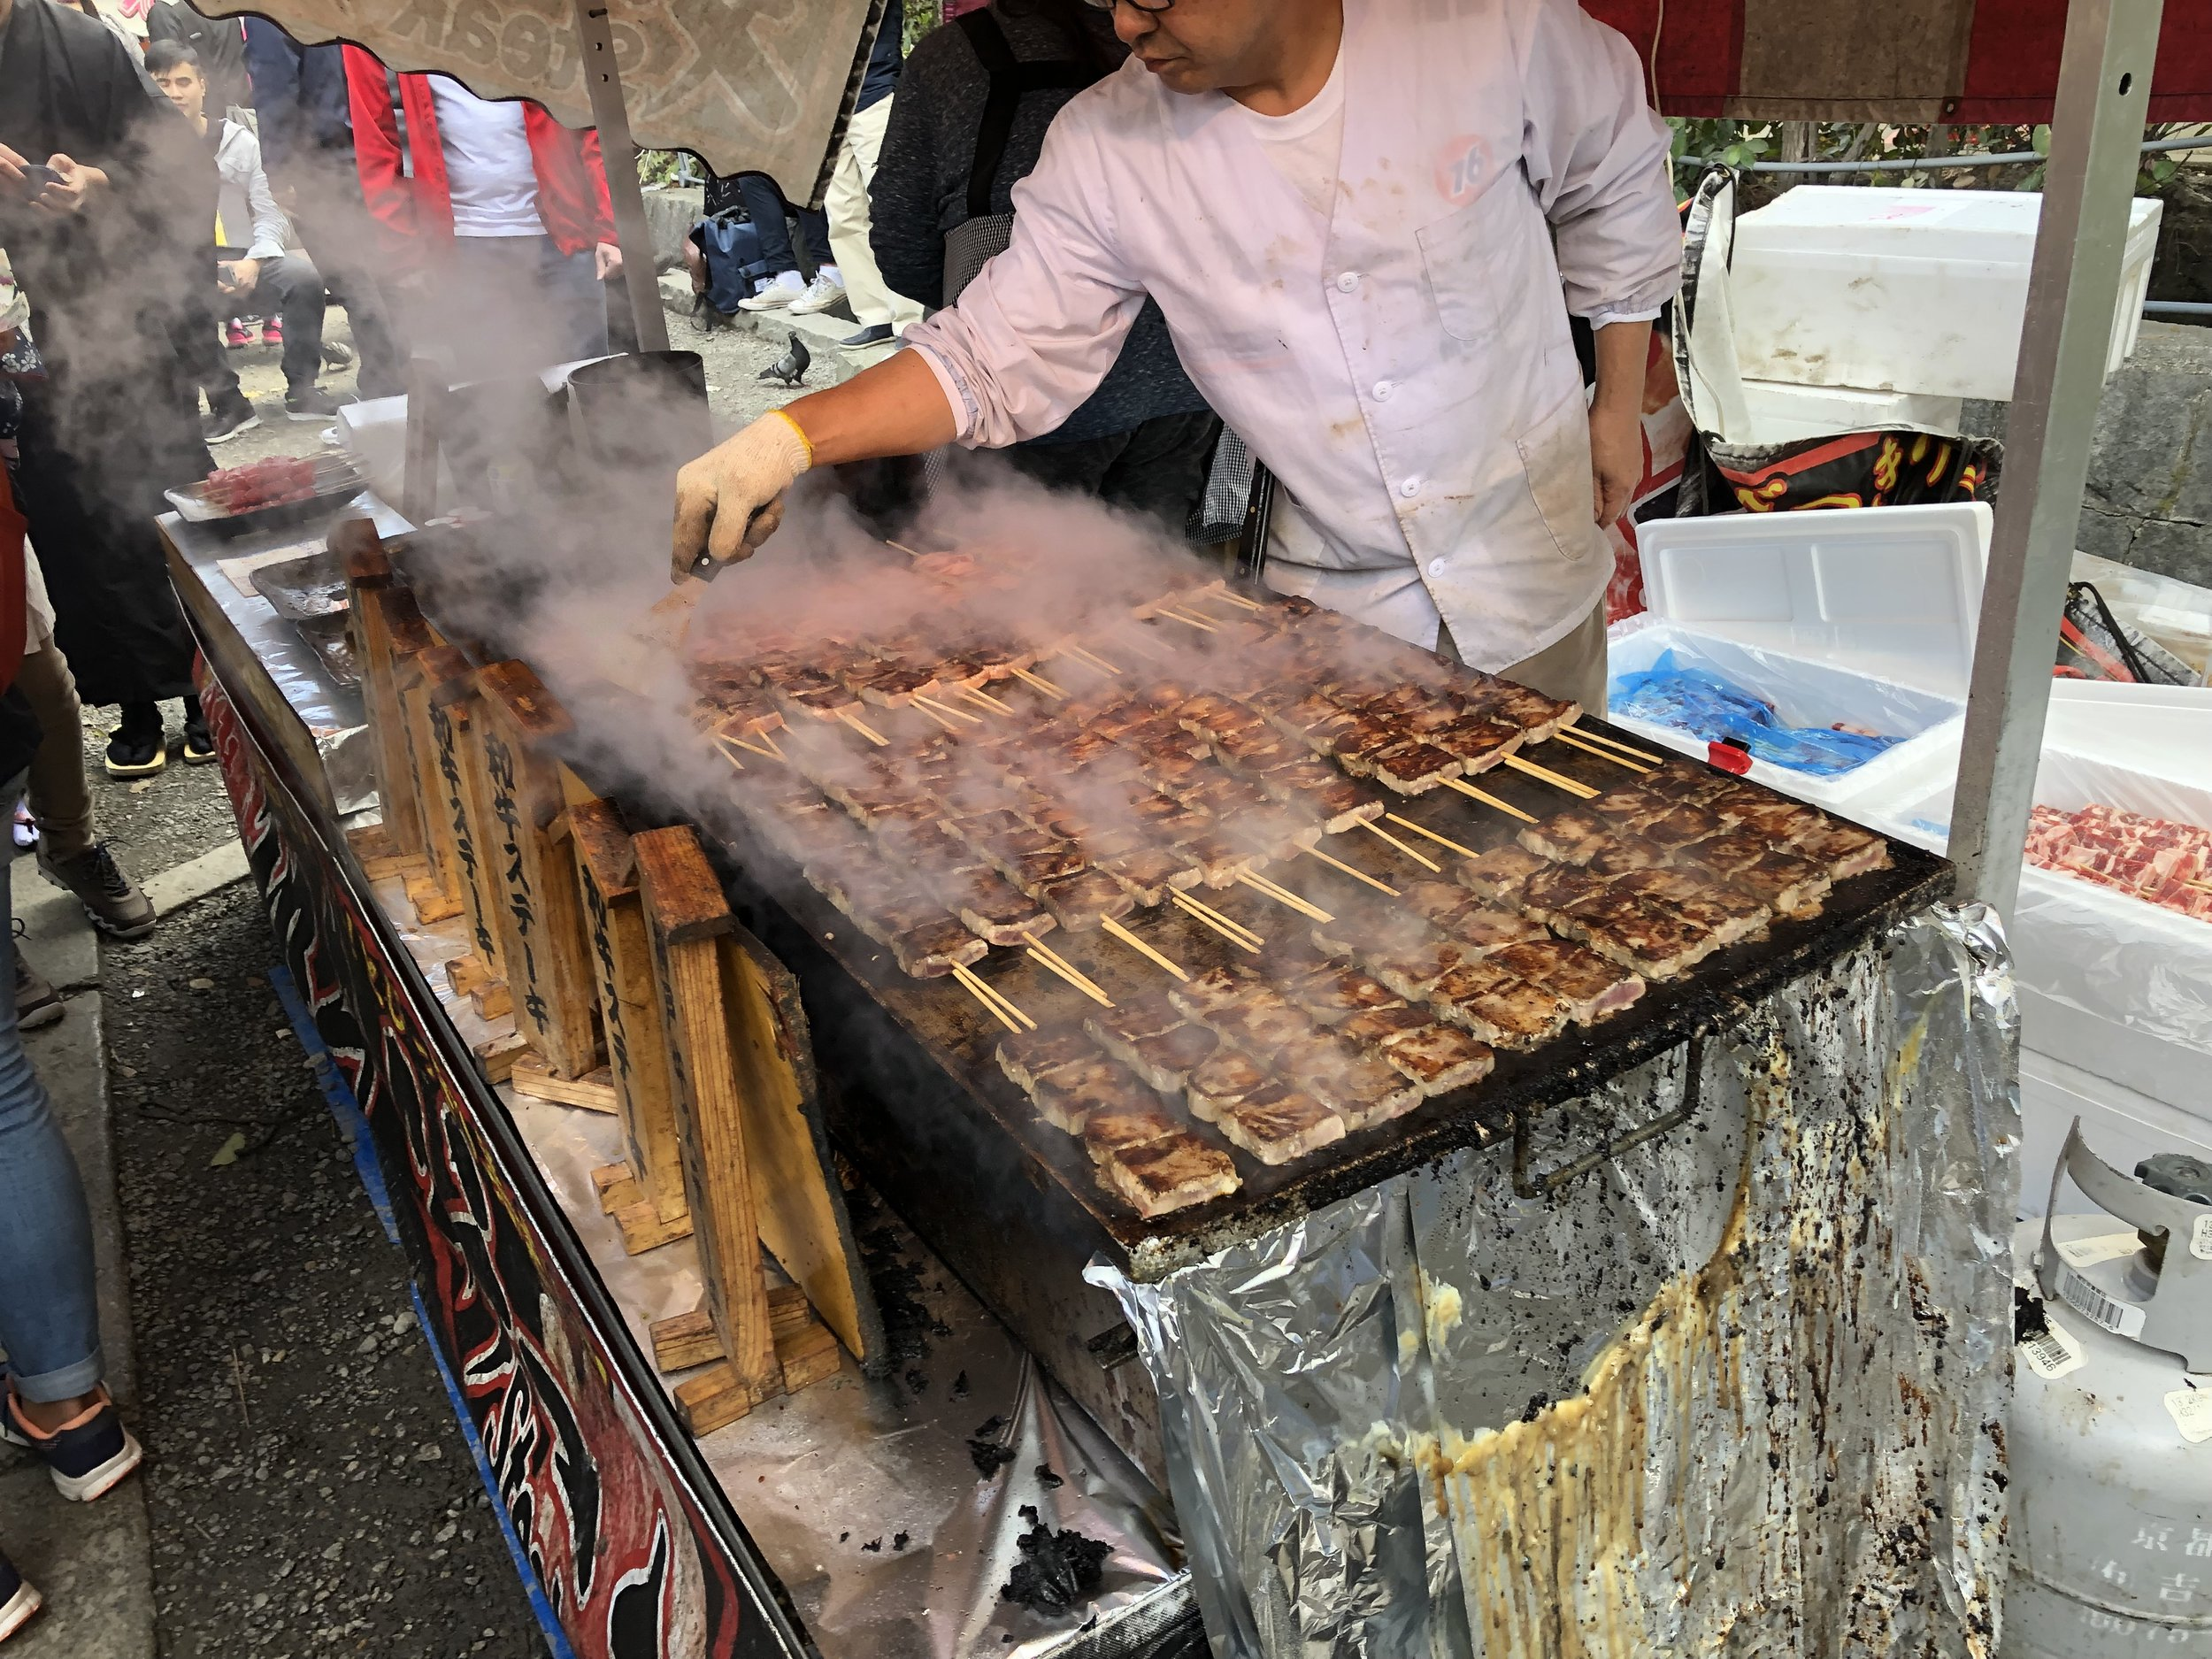 Everywhere we go, people in Japan seem to love their street food.